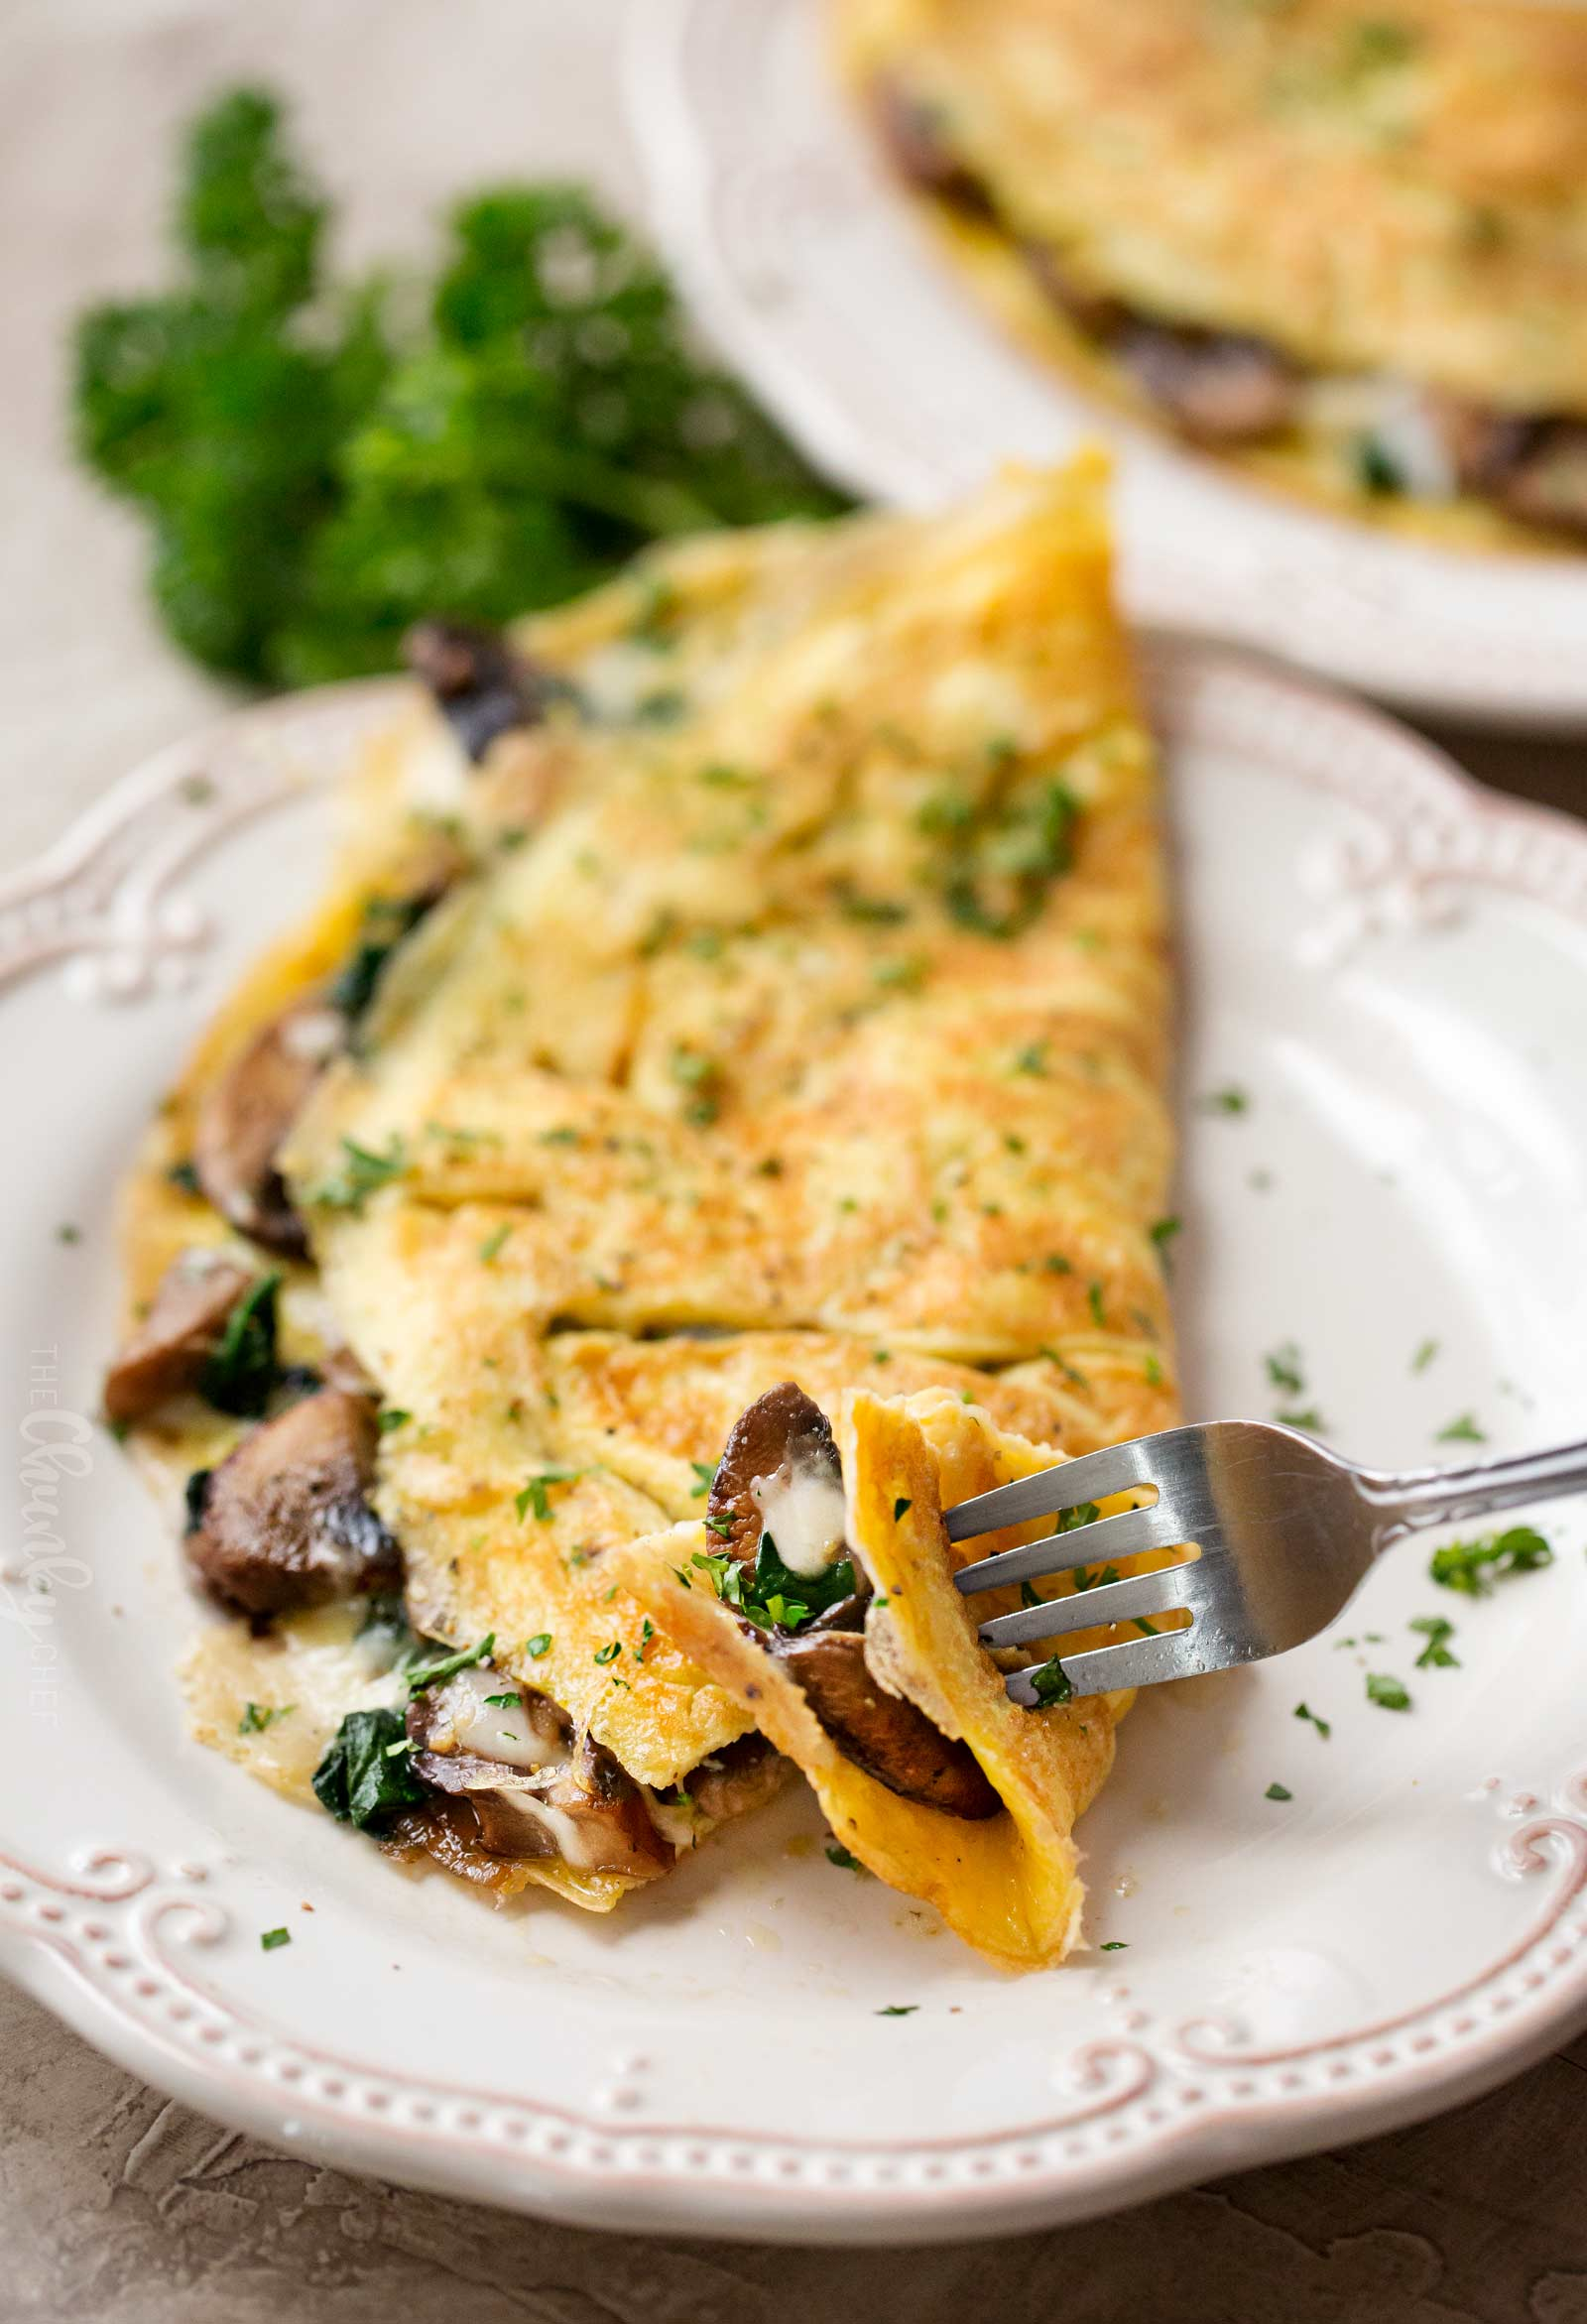 Forkful of omelet